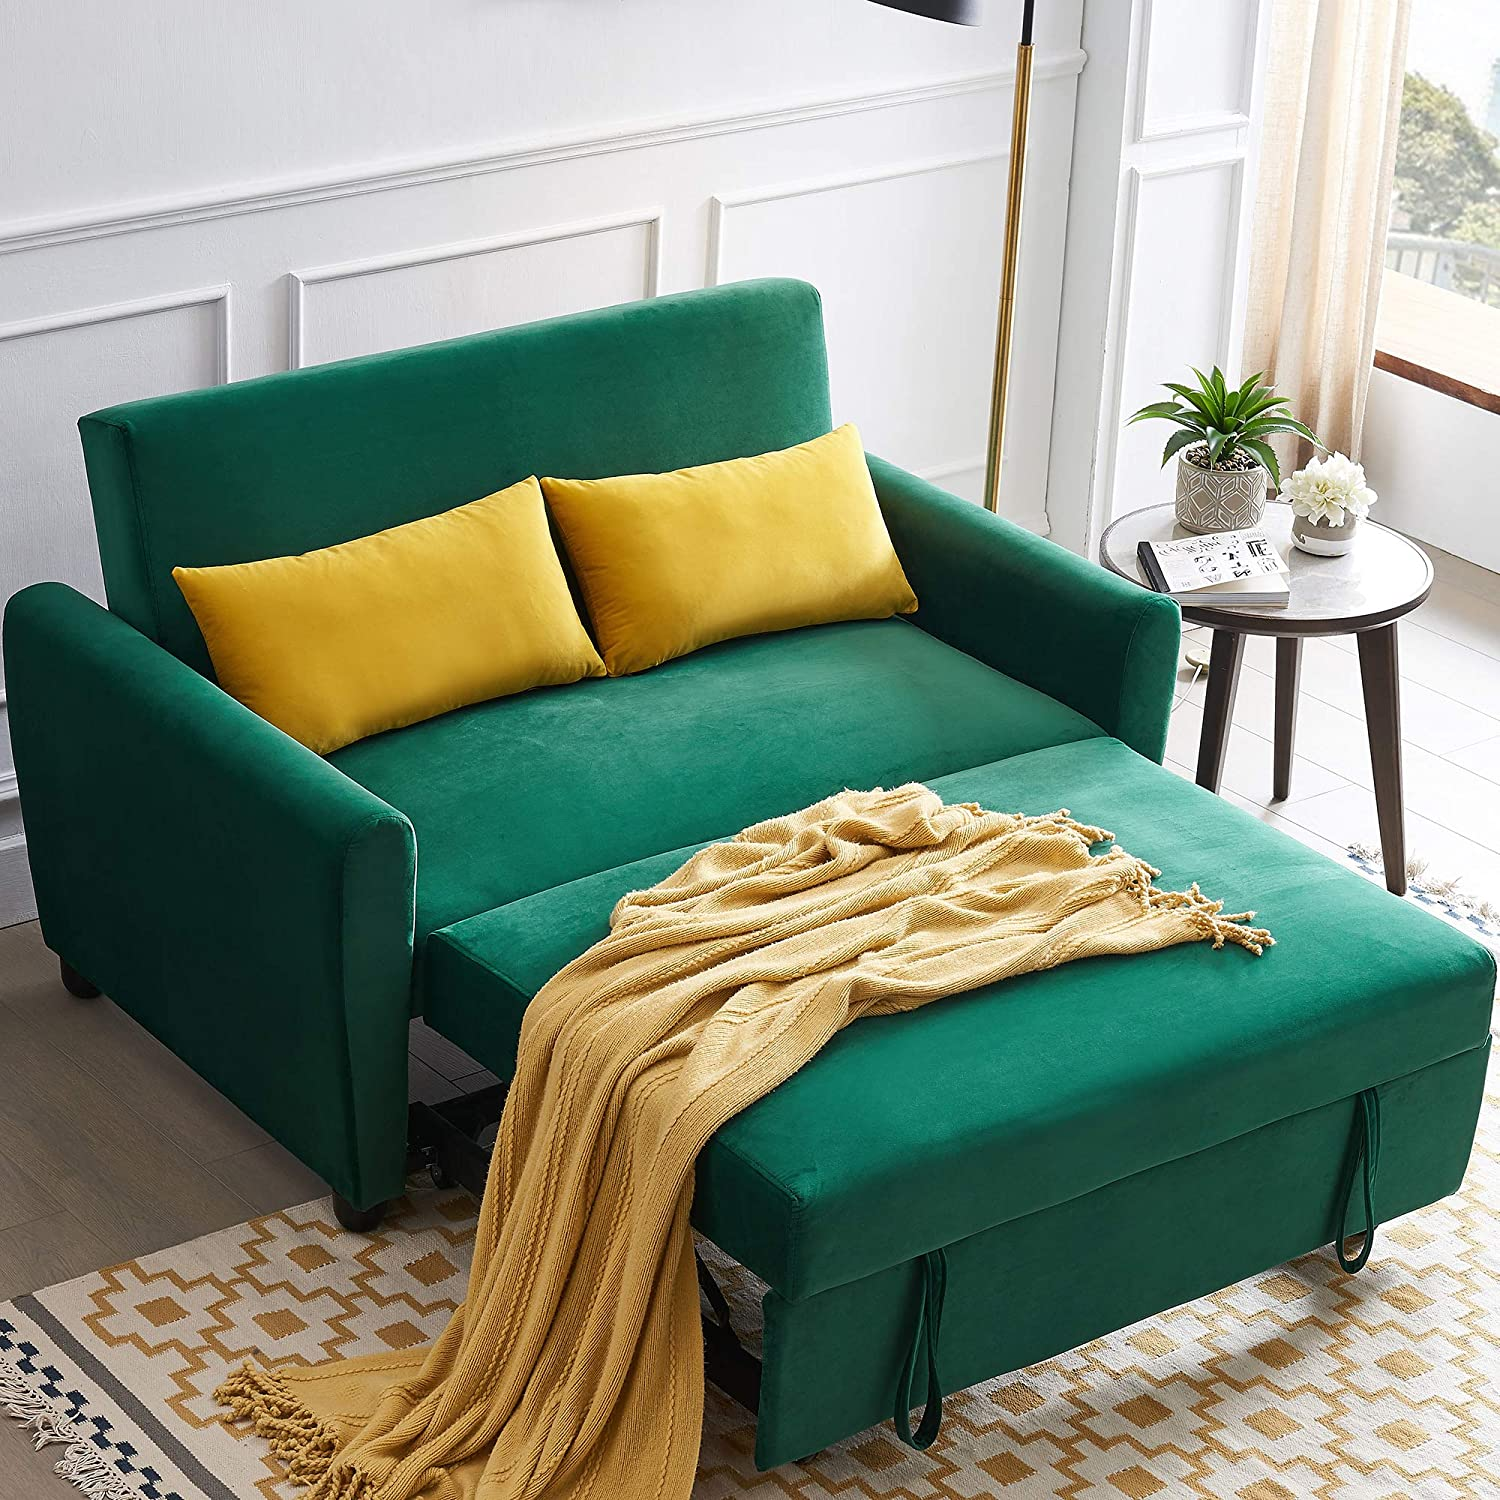 STARTOGOO Max 72% OFF Reversible Sleeper Sectional Sofa with gift Chaise Longue